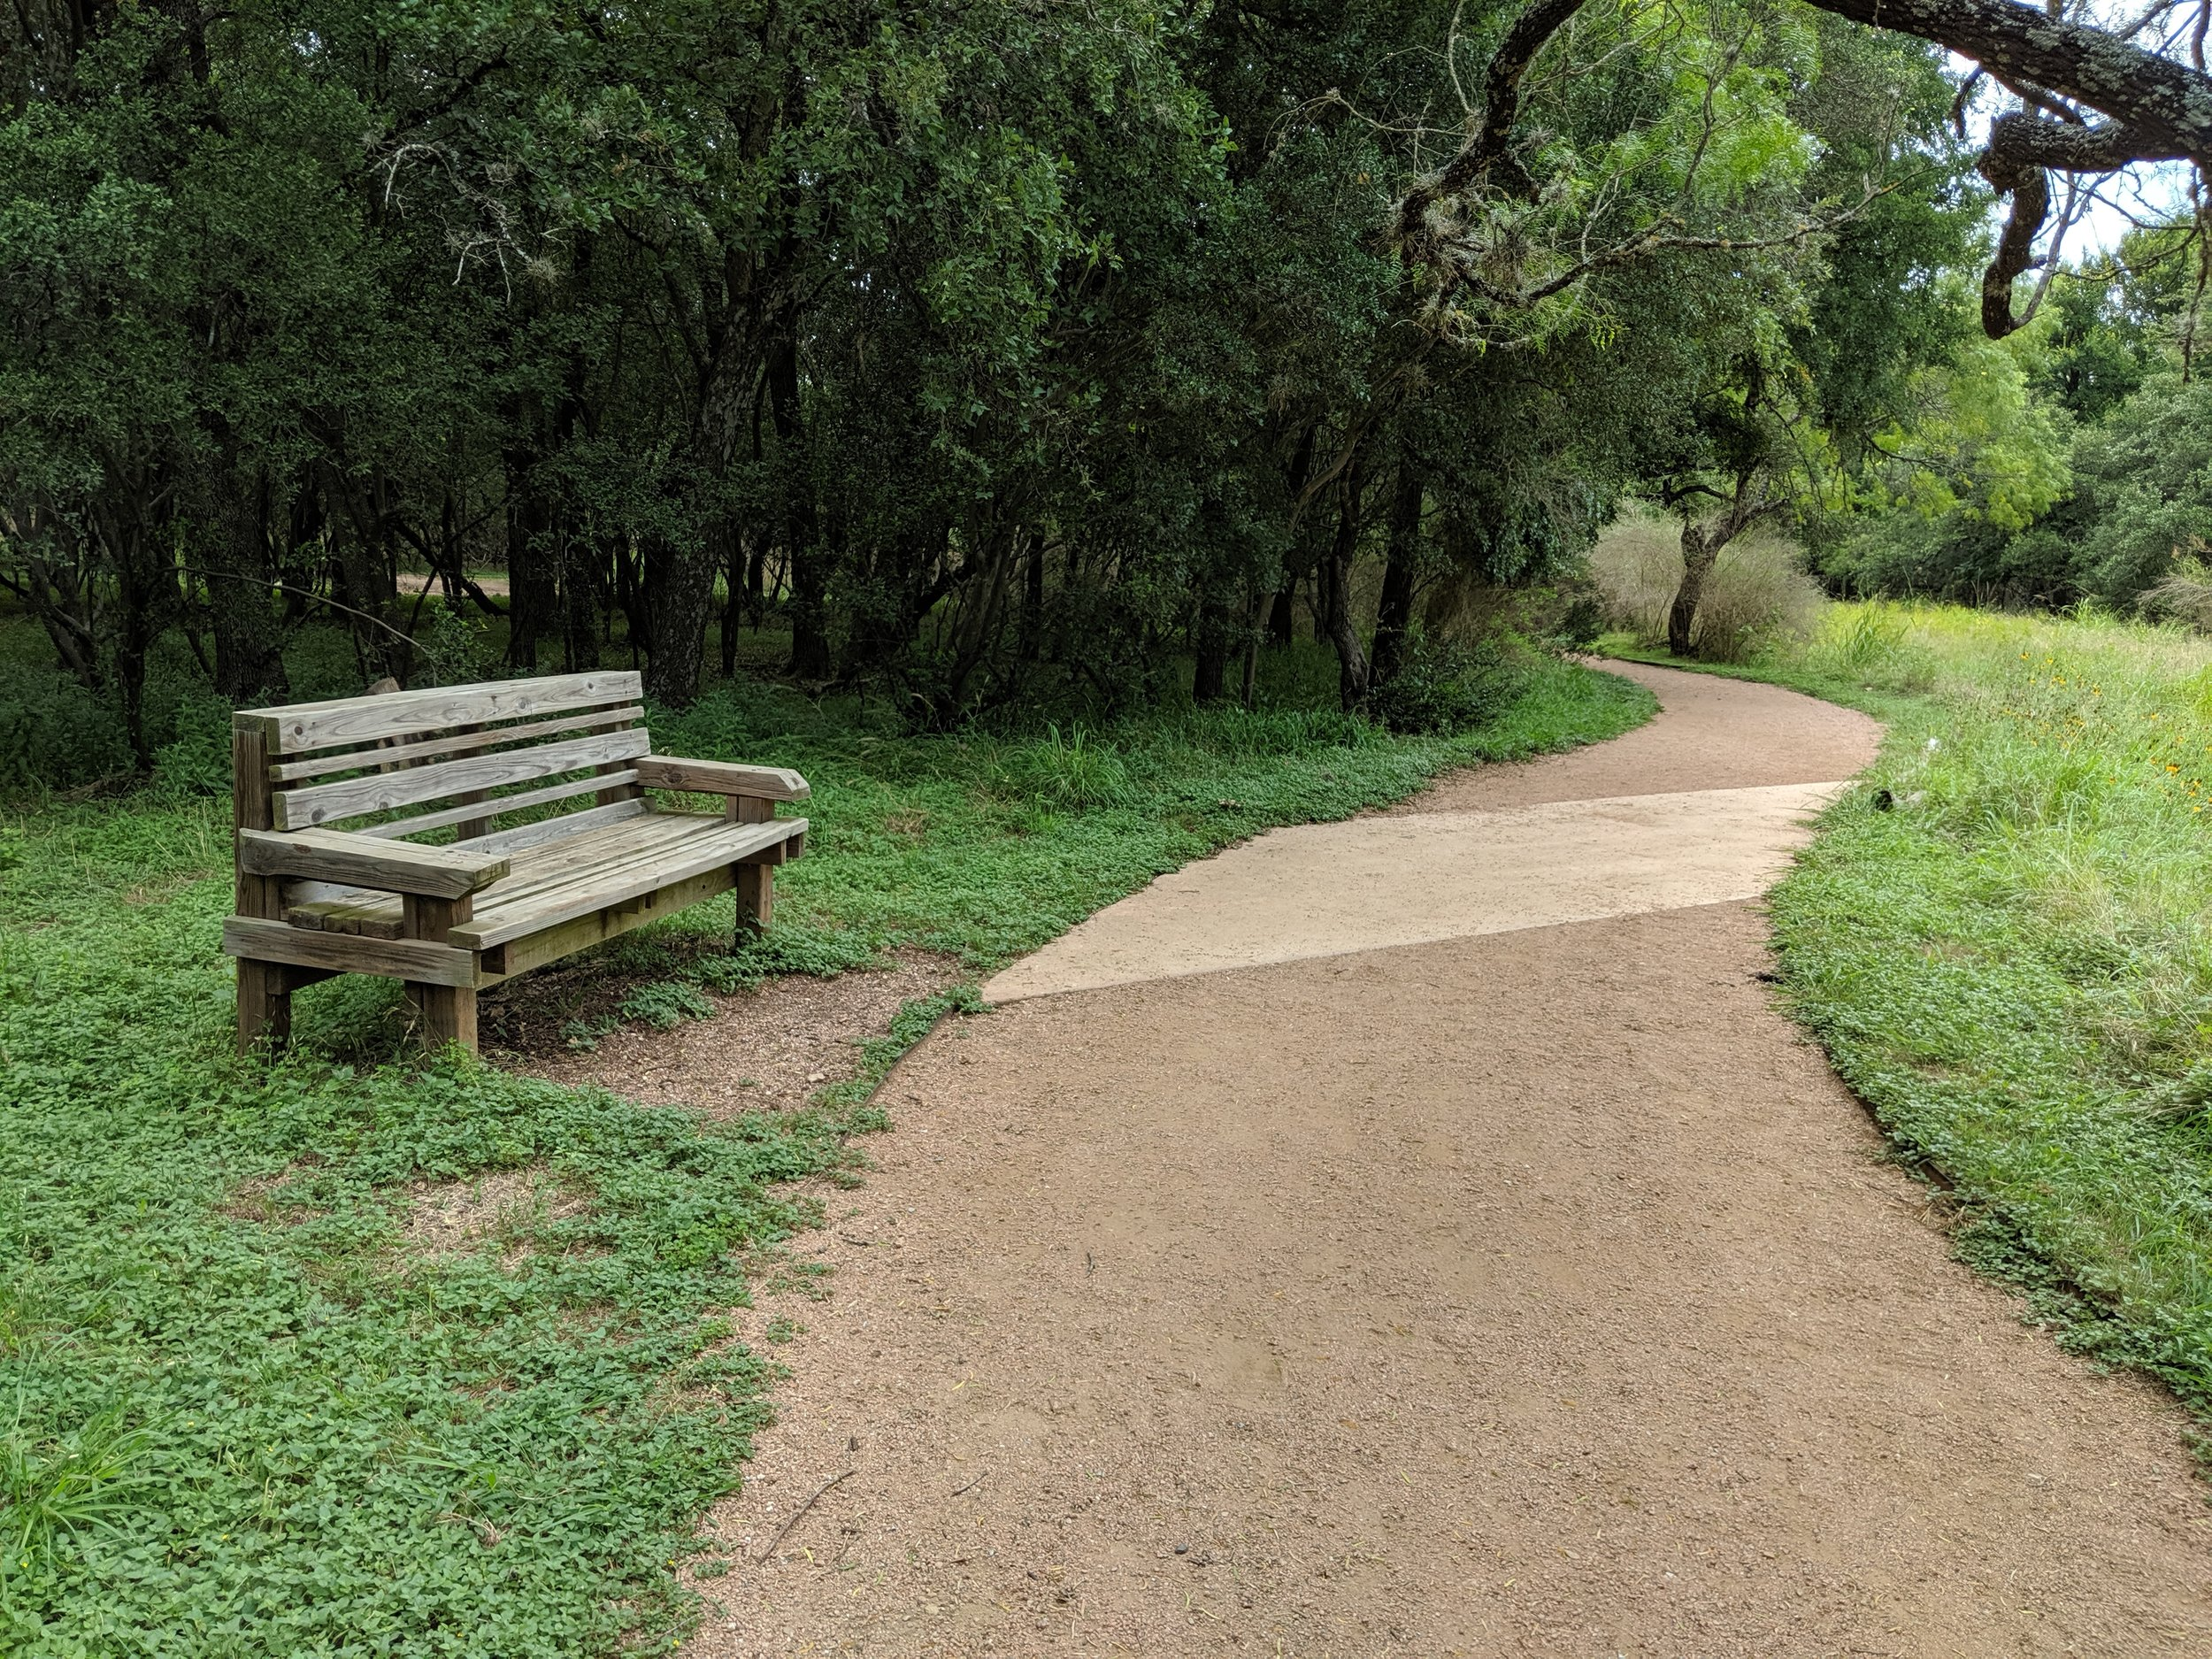 Park Benches - All trails have benches dispersed throughout the park. The benches offer a nice view while taking a break from exploring.